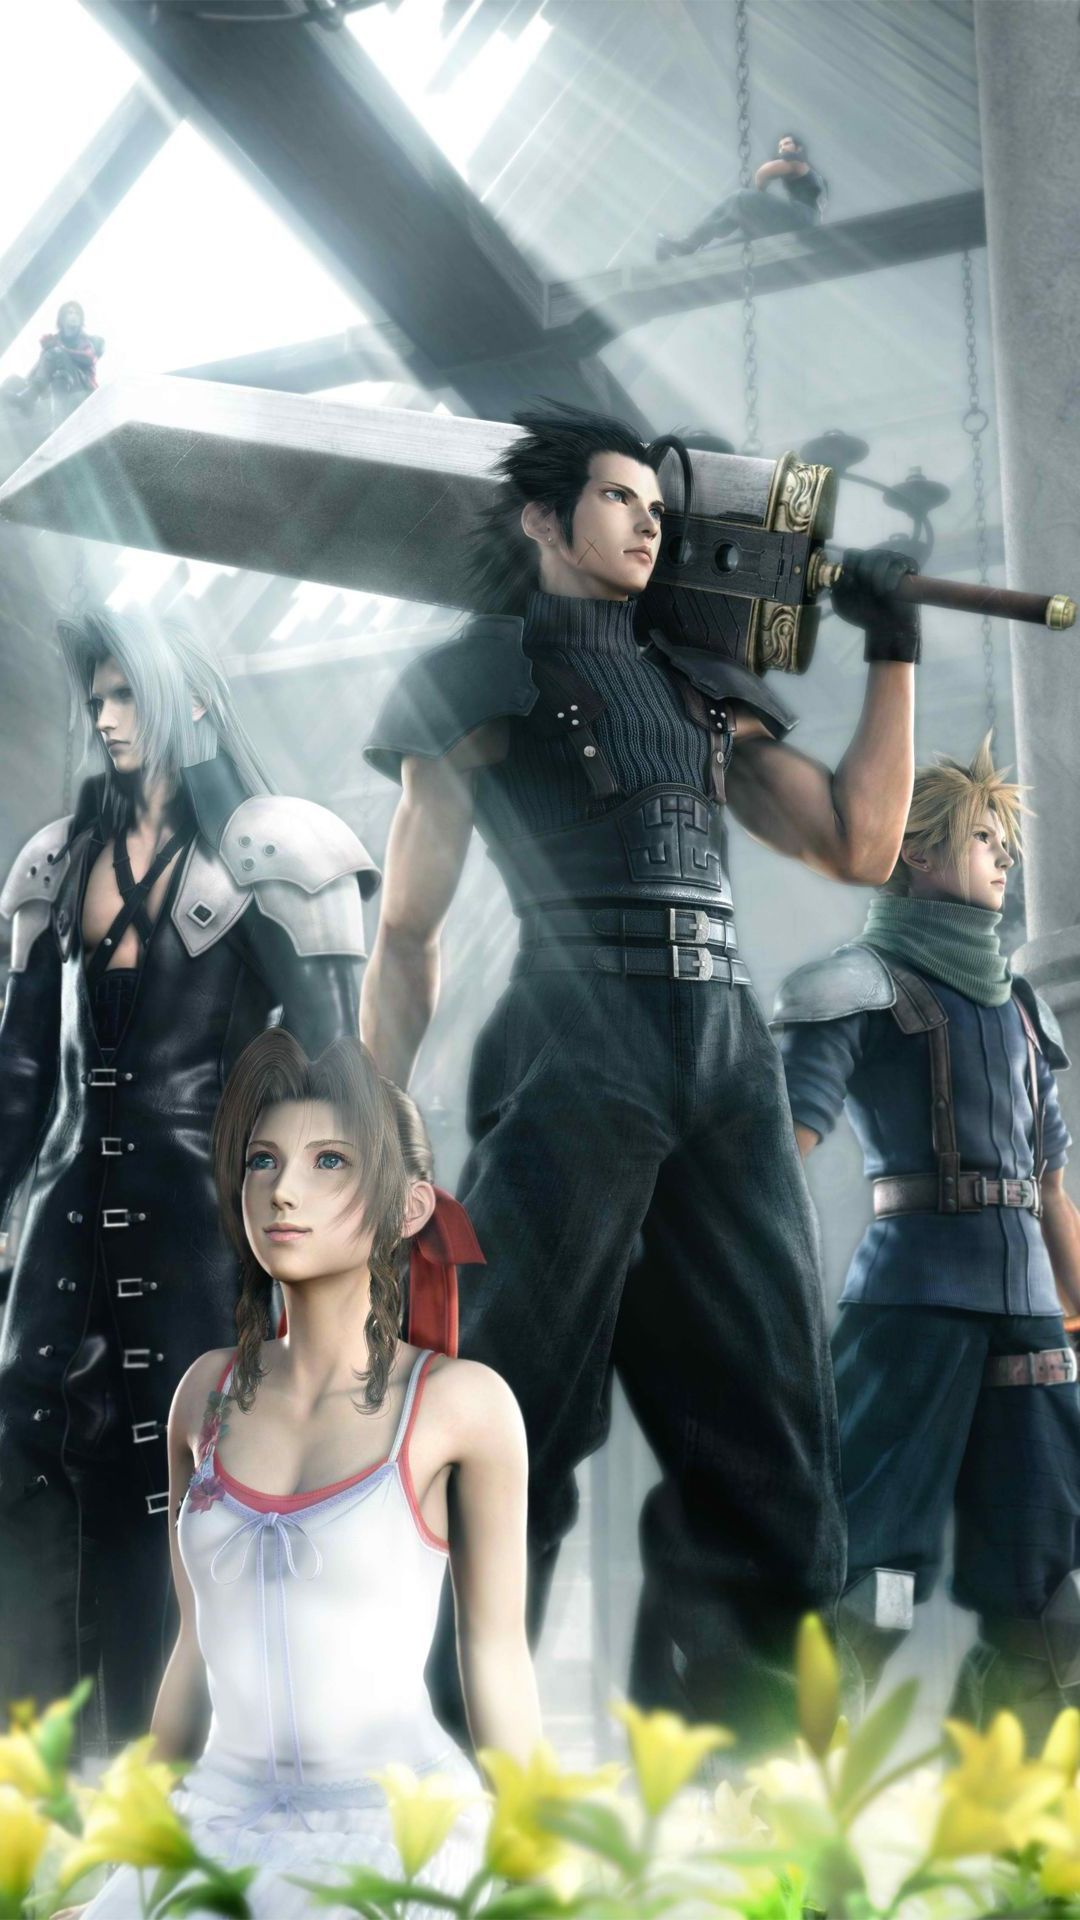 Final Fantasy Wallpaper Android Download > Flip Wallpapers